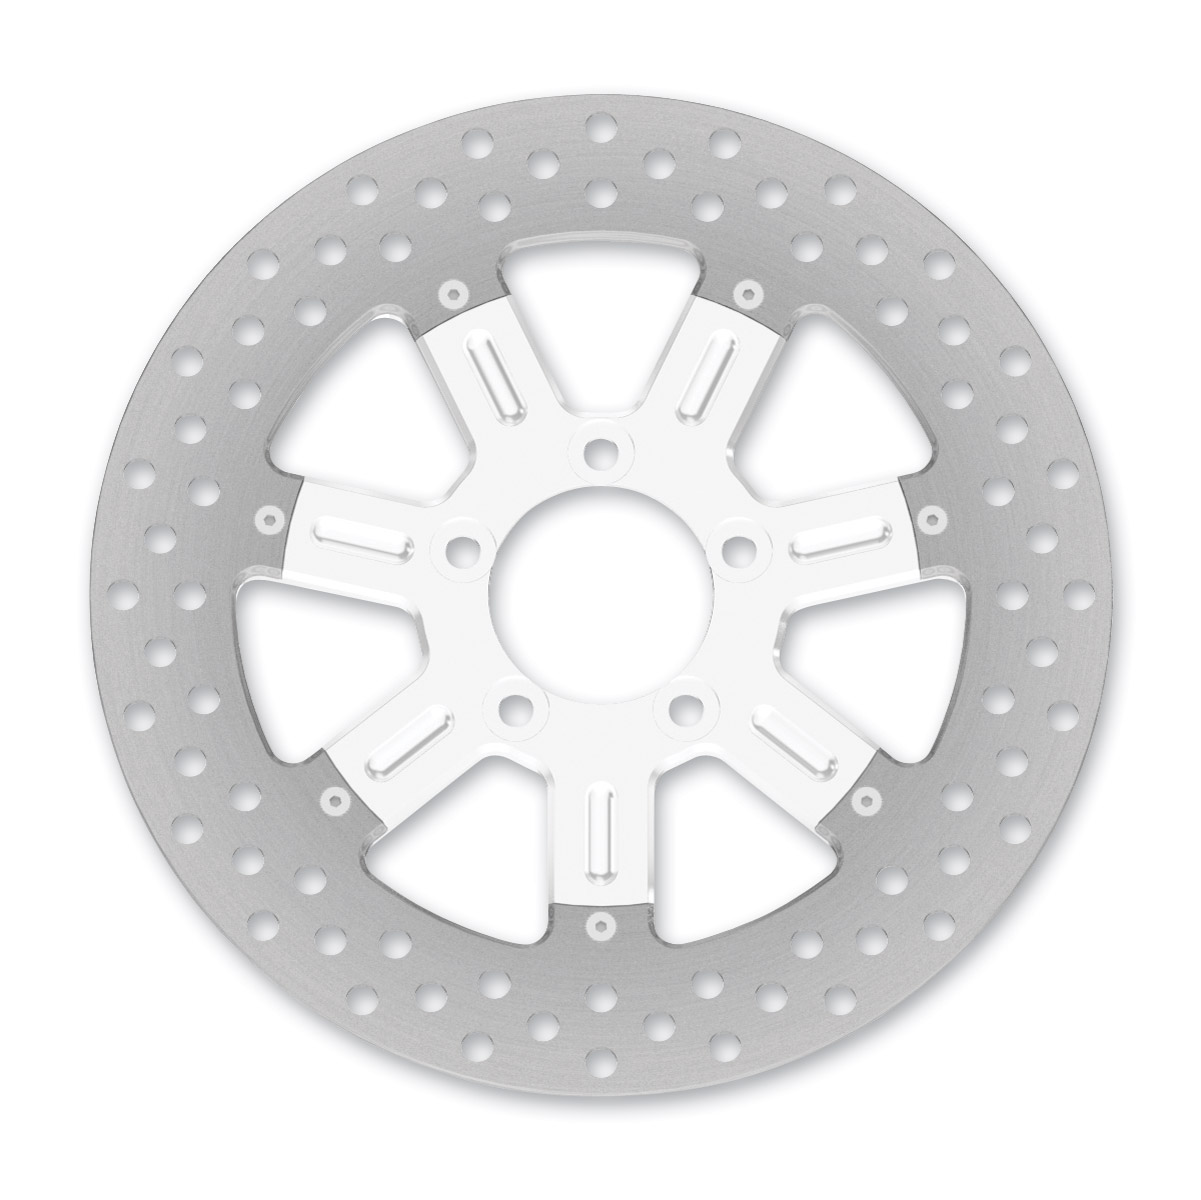 Roland Sands Design Del Mar Chrome Two-Piece Rear Brake Rotor, 11.5